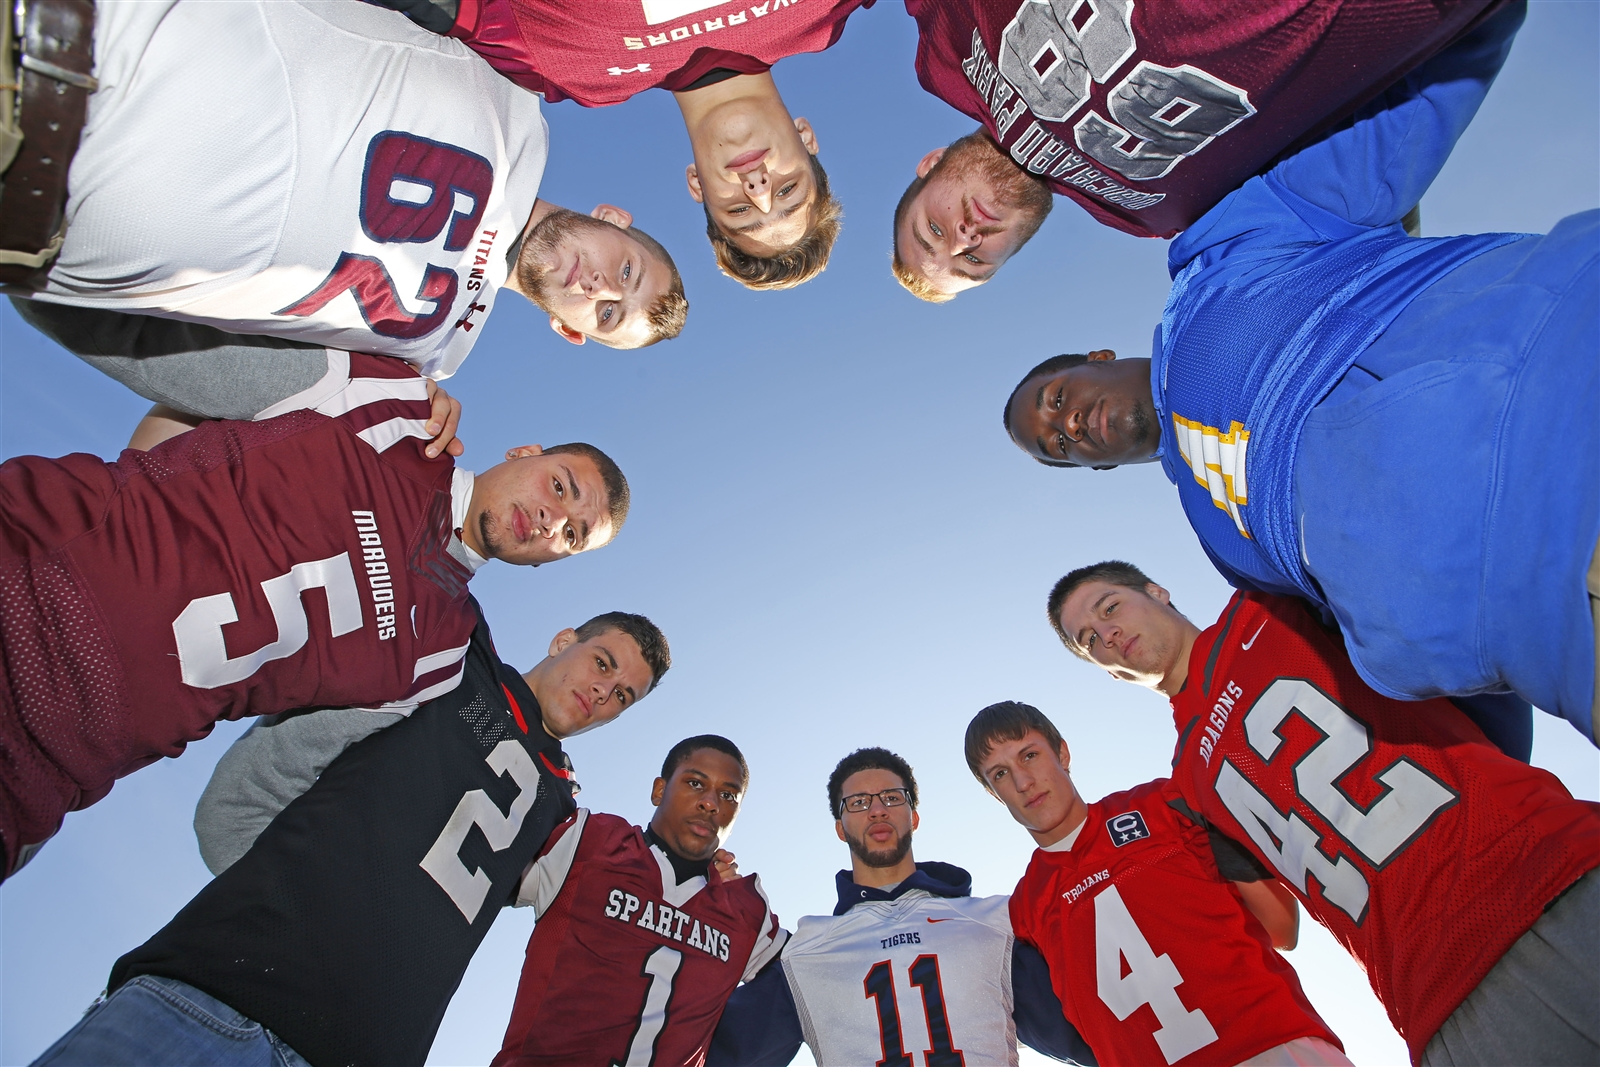 Football players representing the 10 schools playing in the Section VI playoff games pose for a photo during Media day at New Era Field on Tuesday, Nov. 1, 2016.